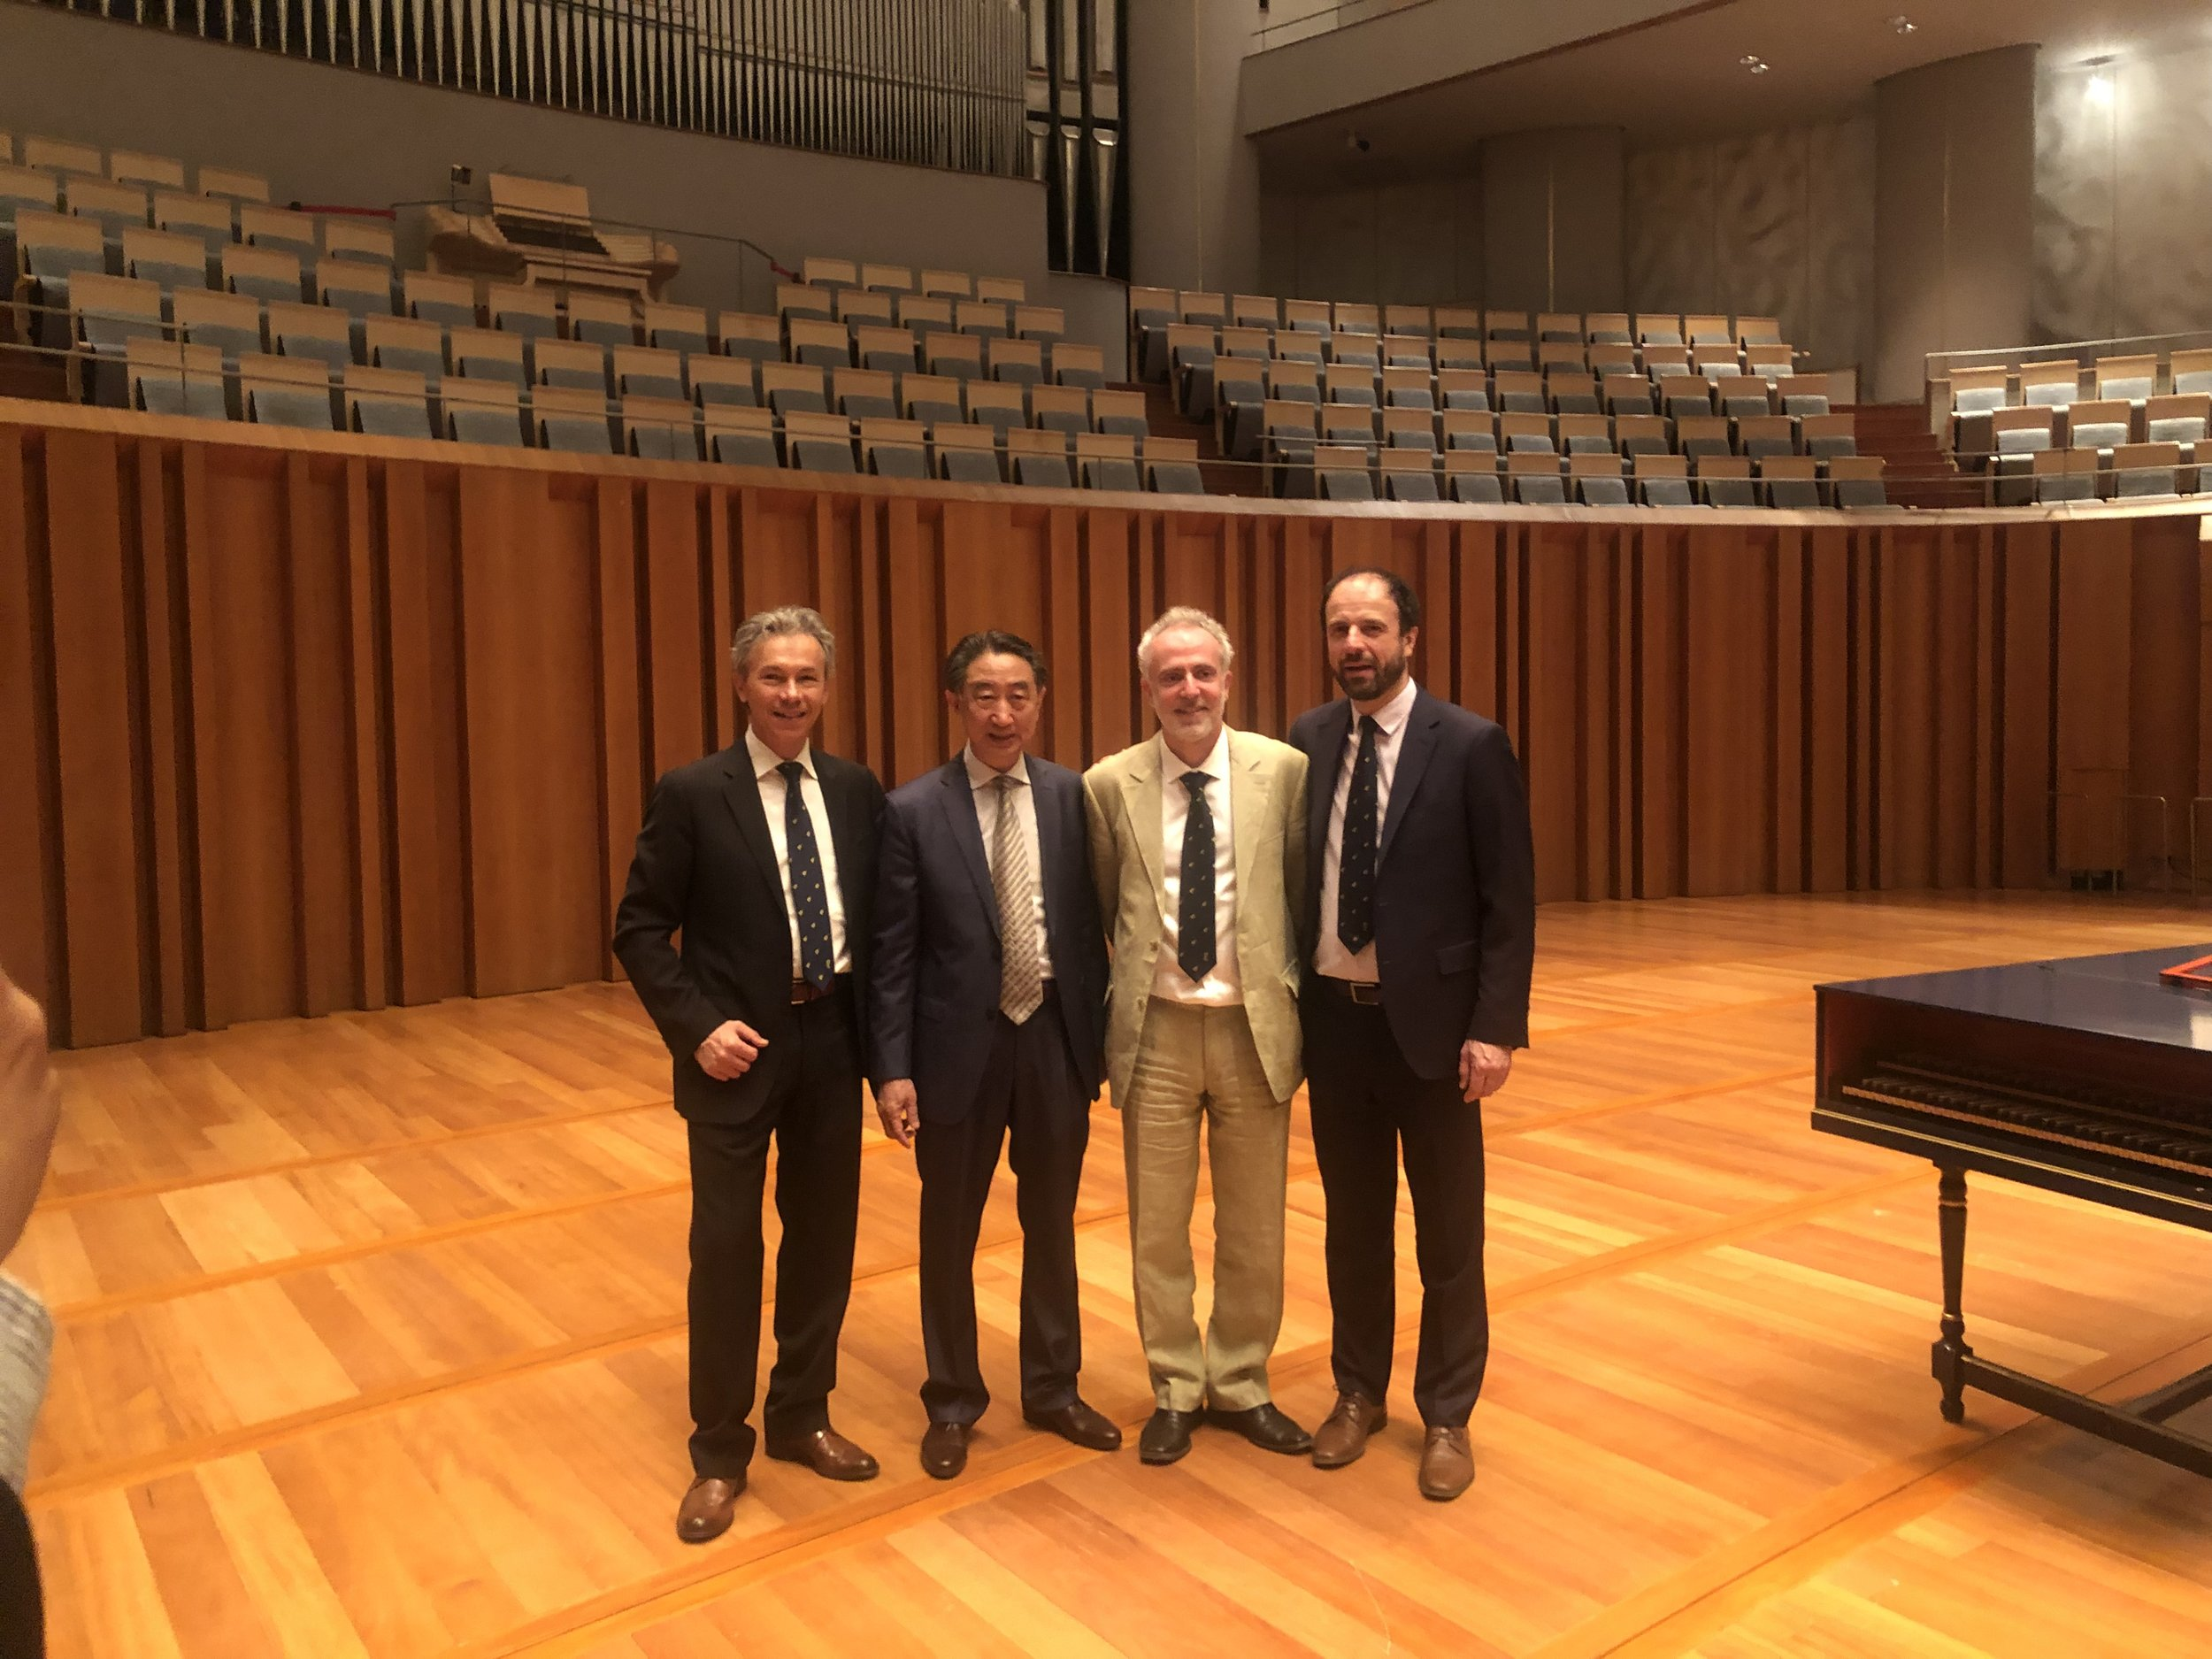 Zheng Quan with Simeone Morassi, Pierre Caradot, and Olivier Perot at the 4th China International Violin and Bow Making Competition